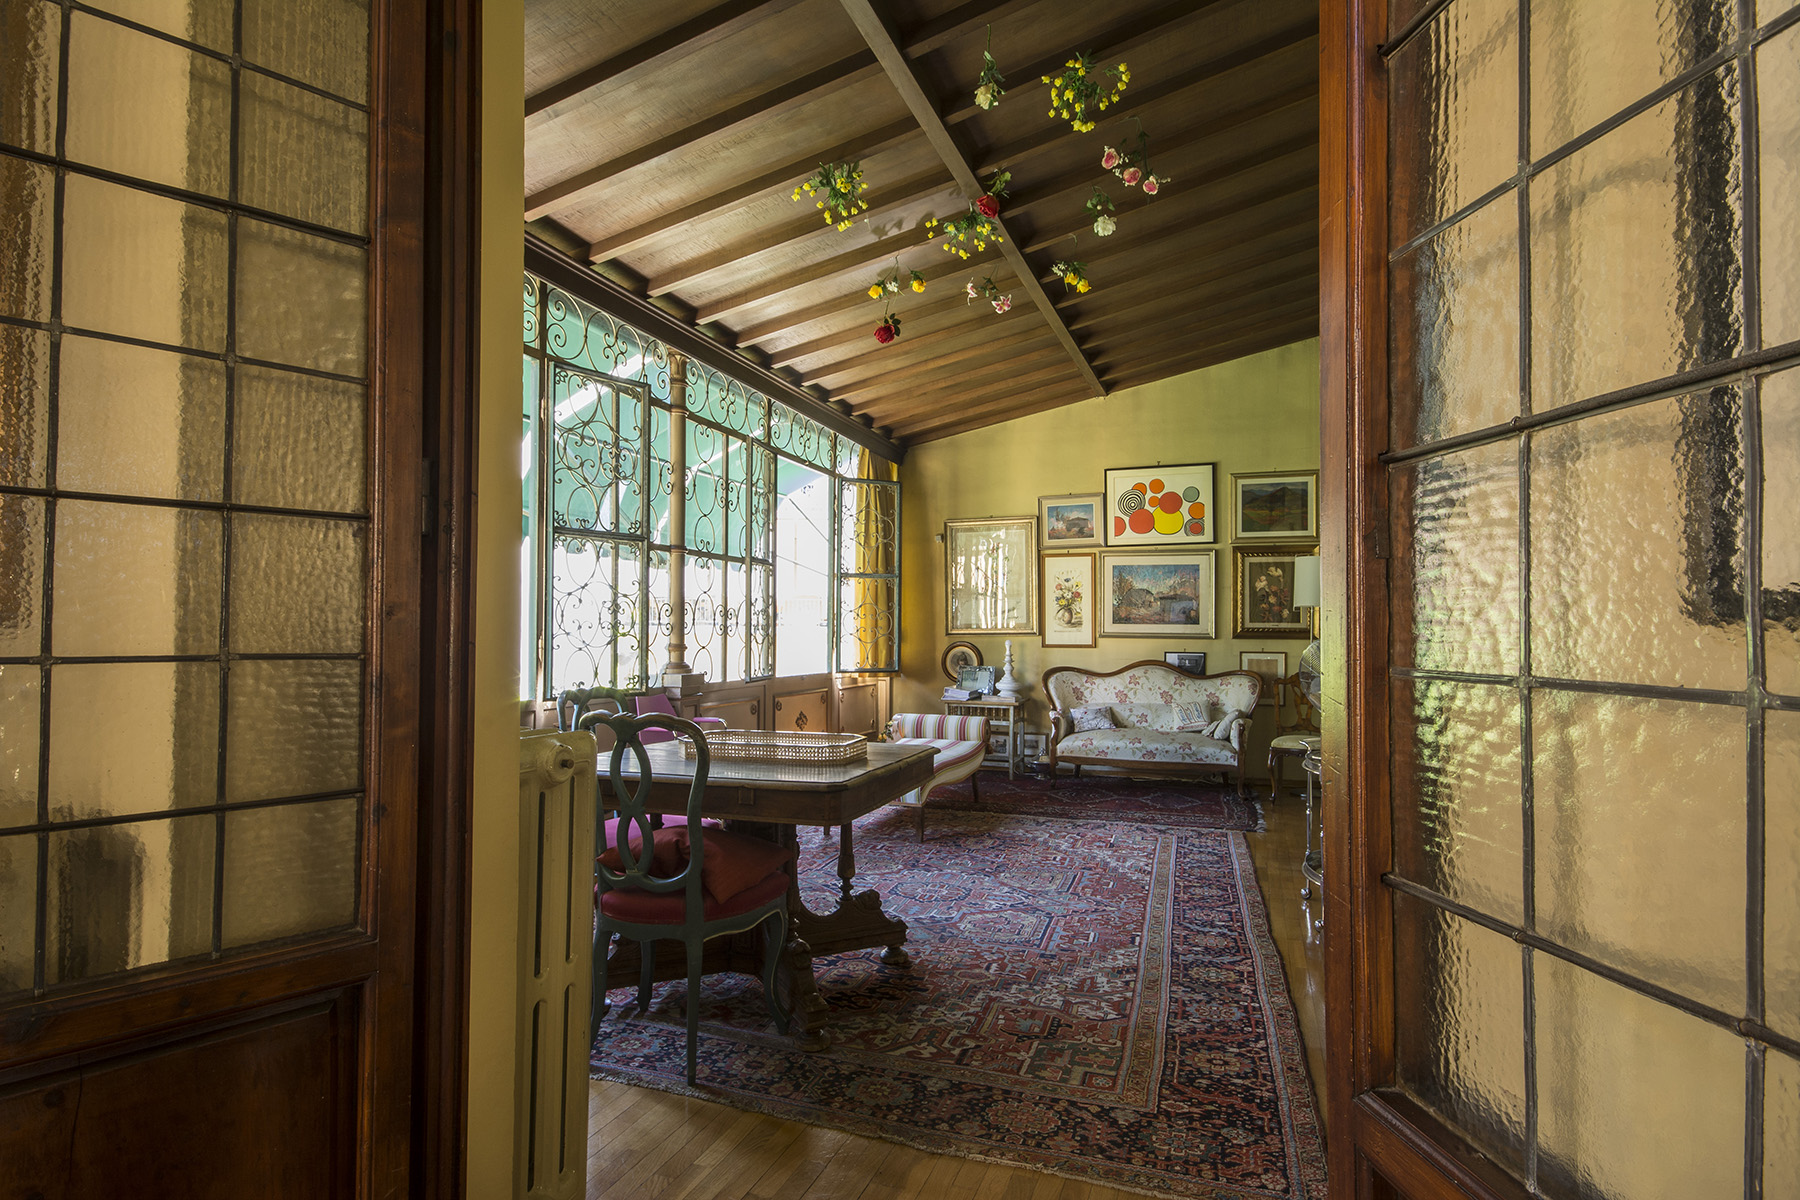 Additional photo for property listing at 19th century villa in the heart of Florence Savonarola, Firenze, Florence Italy